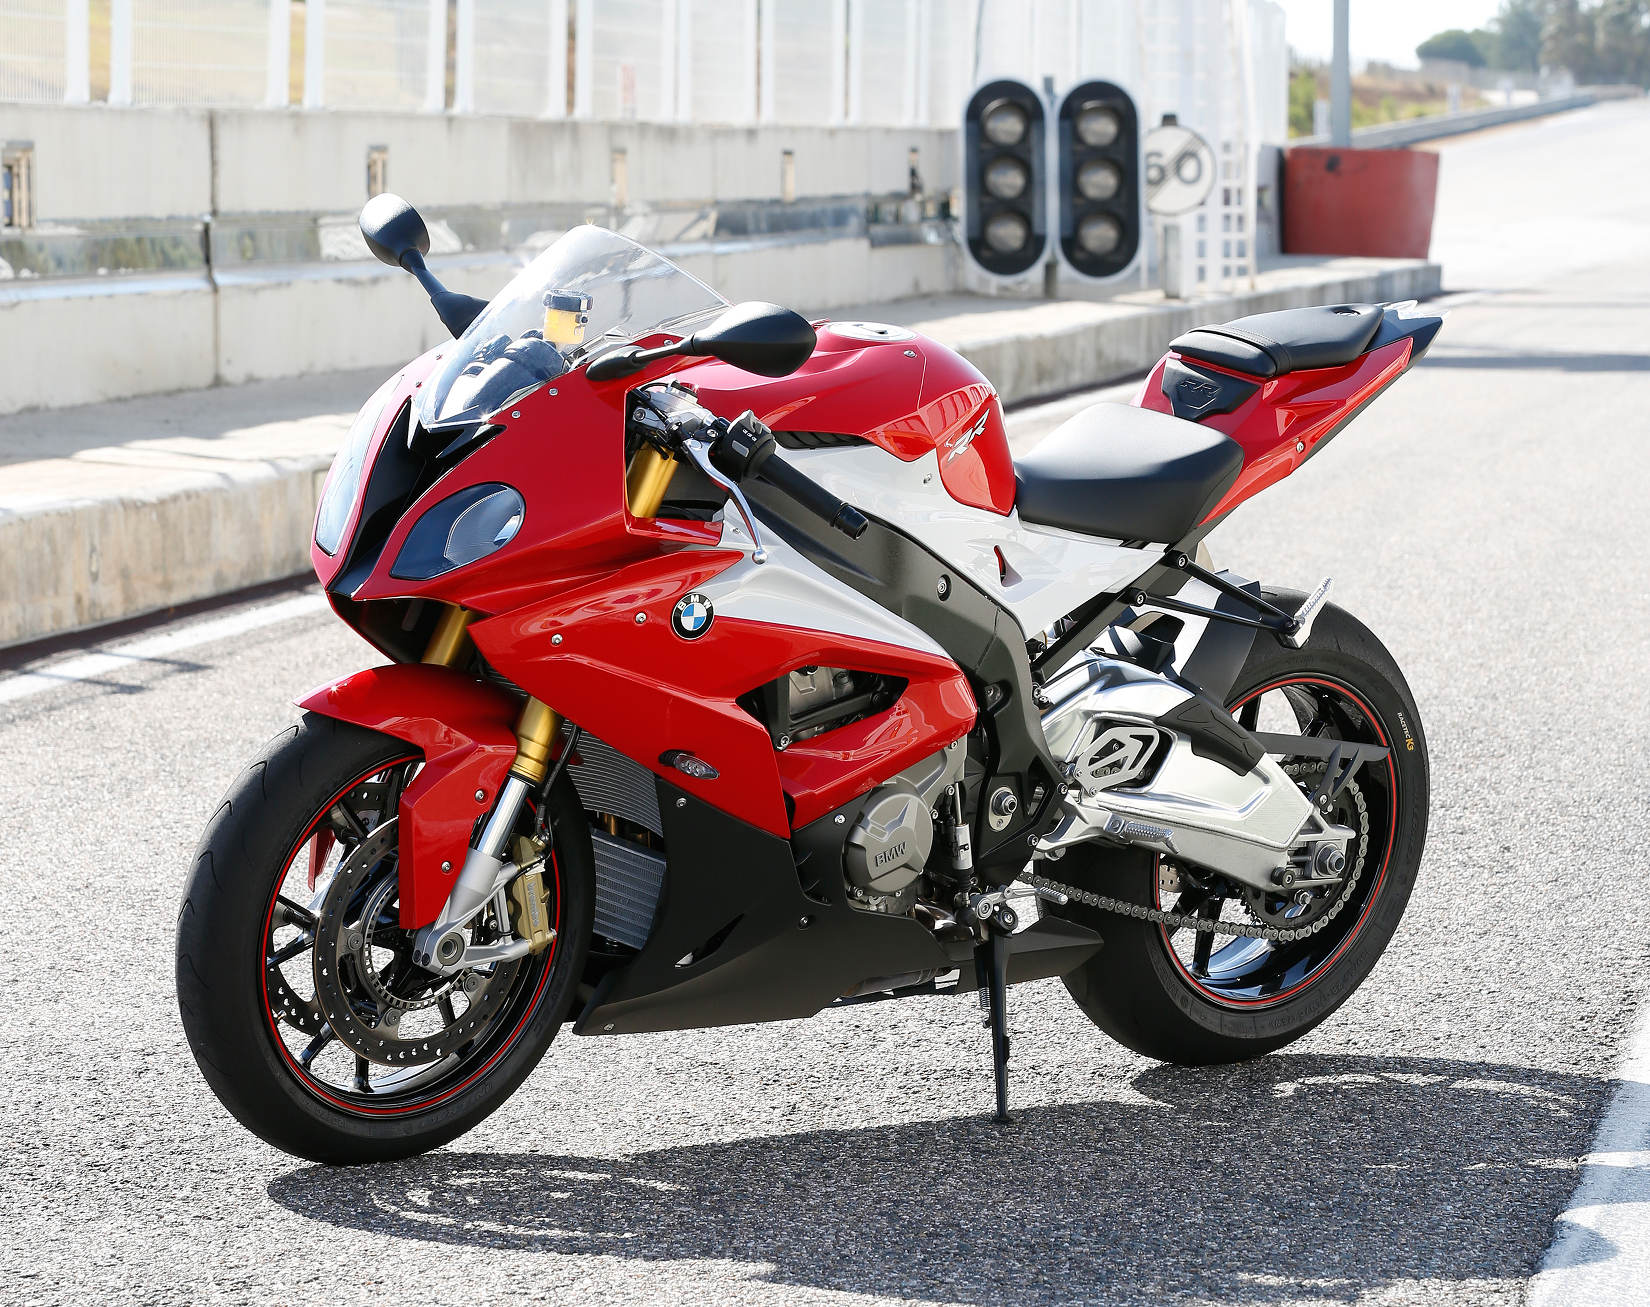 bmw unveils new s 1000 rr motorcycle news editorials product reviews. Black Bedroom Furniture Sets. Home Design Ideas